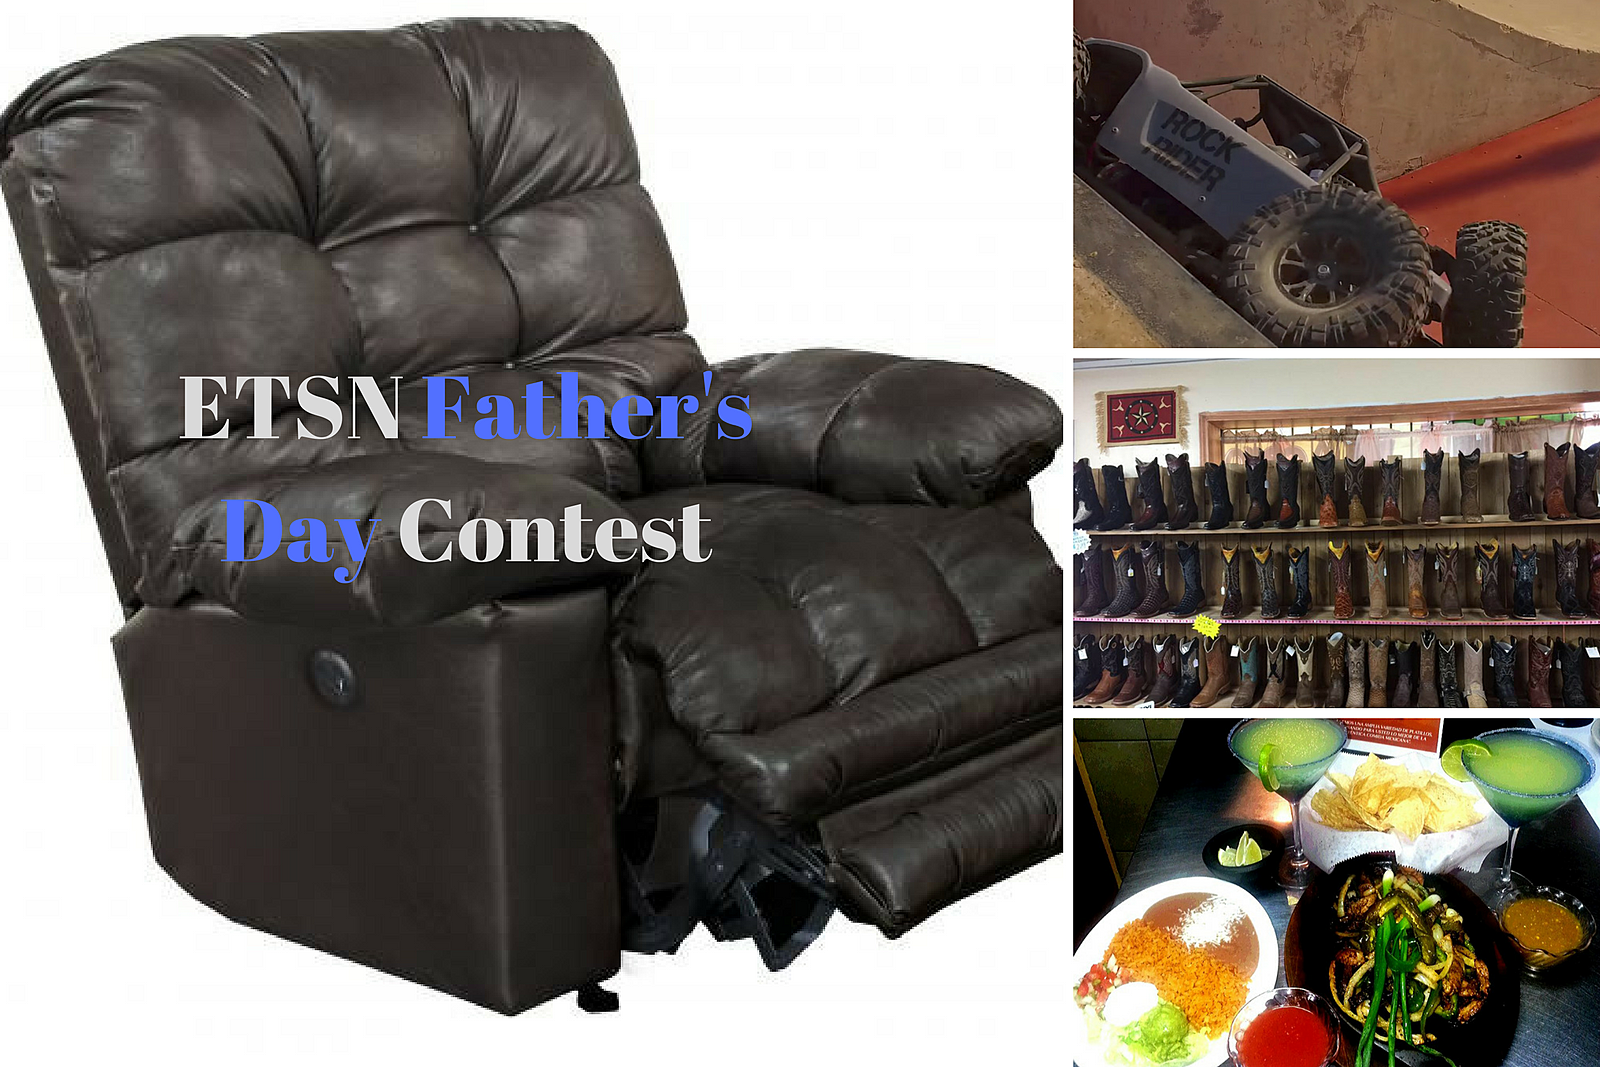 ETSN Father's Day Contest